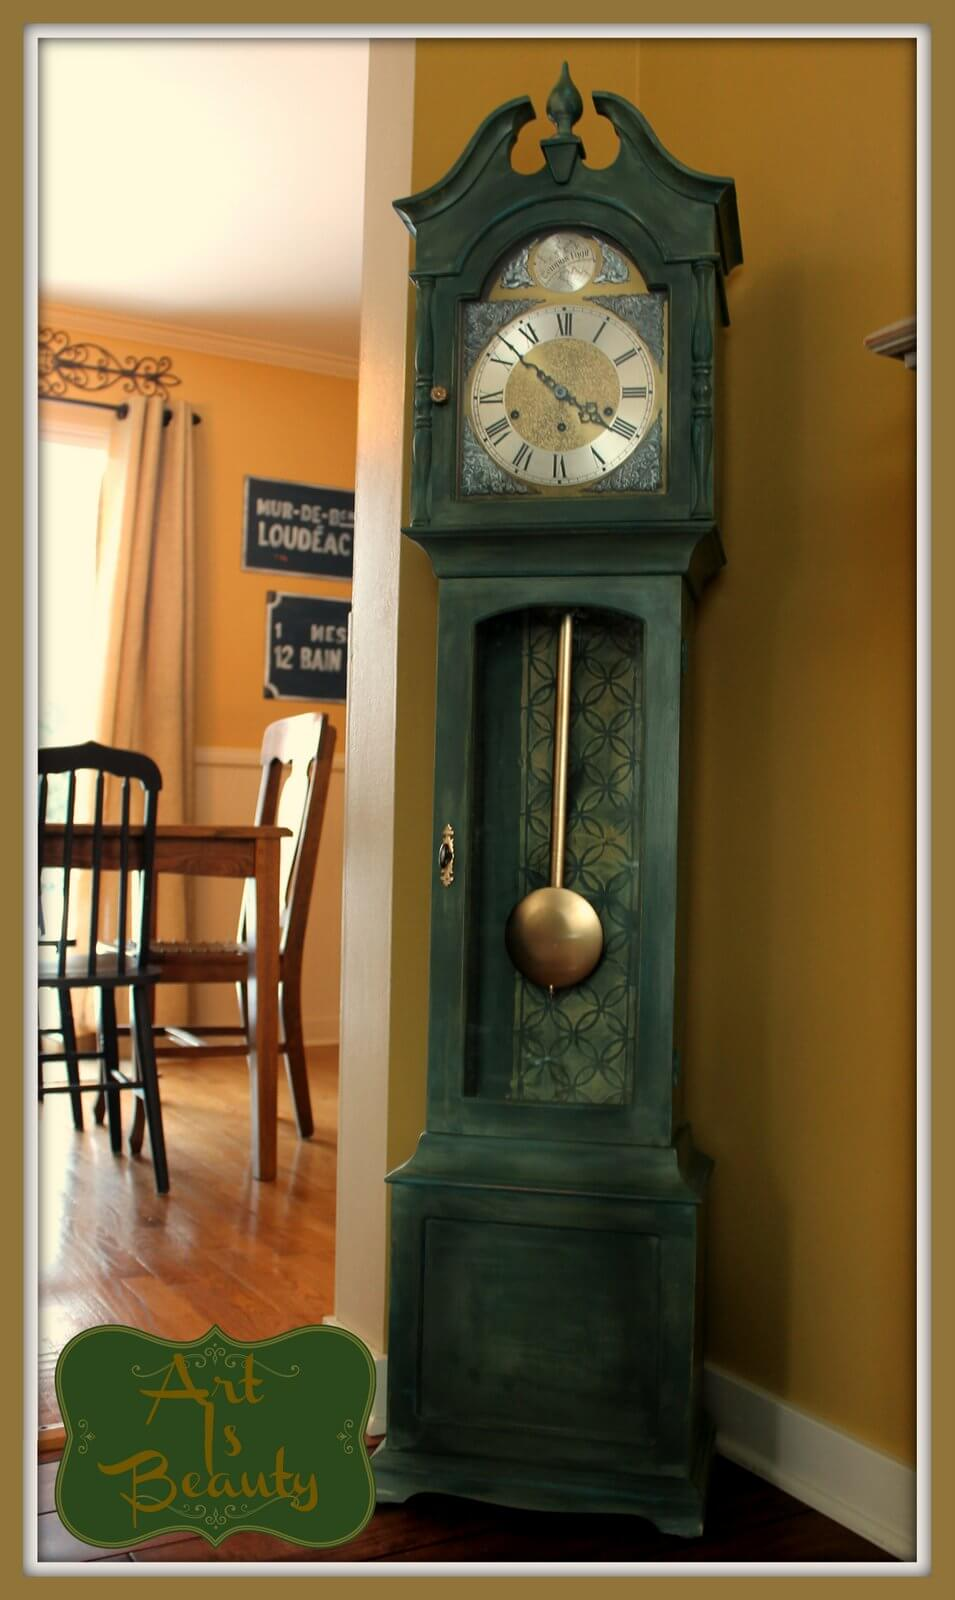 Stunning Grandfather Clock Adds Vintage Appeal